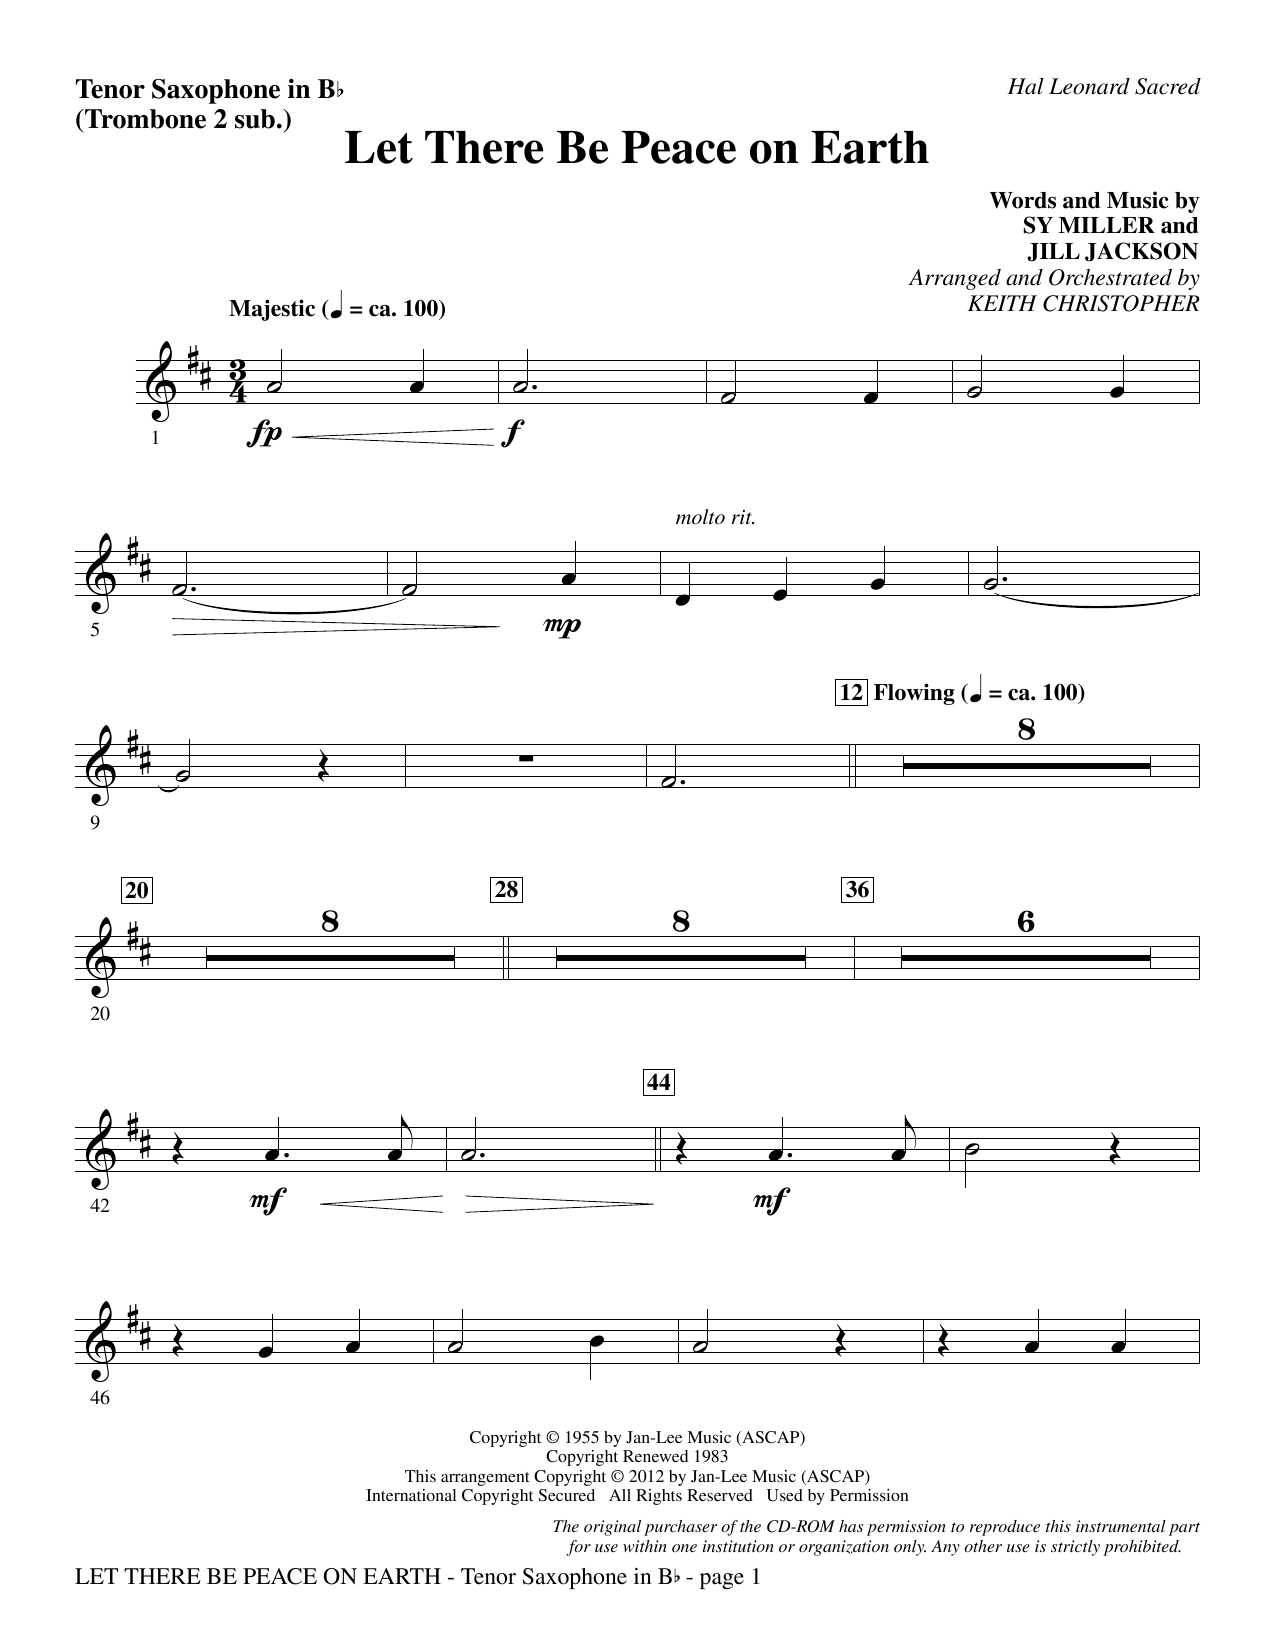 Let There Be Peace On Earth - Tenor Sax (sub. Tbn 2) Sheet Music